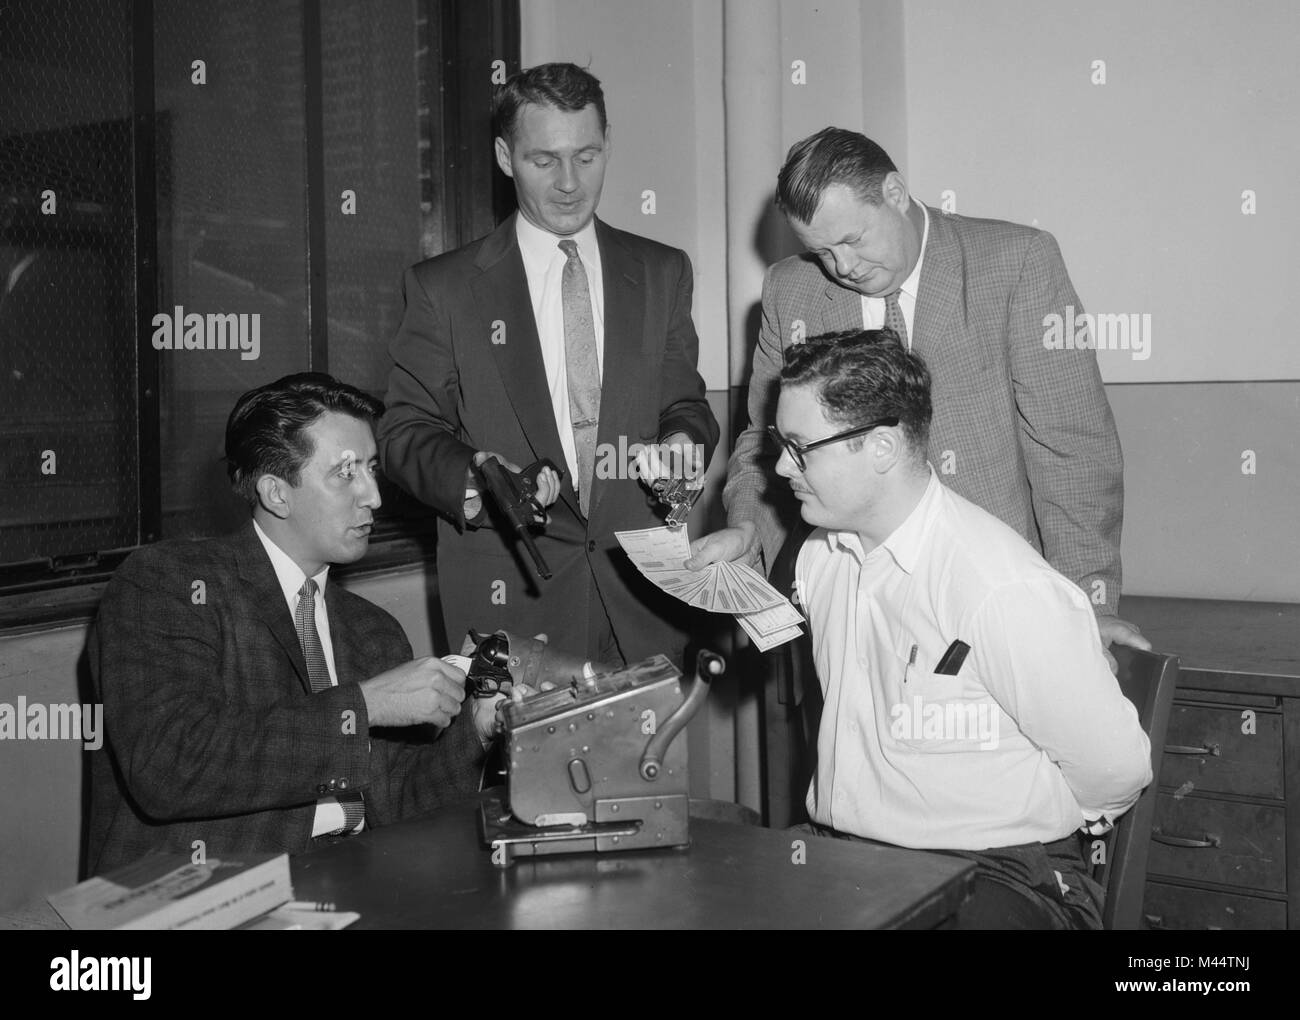 A suspected Chicago check forger is confronted by multiple cops with evidence of his crime, ca. 1950. - Stock Image